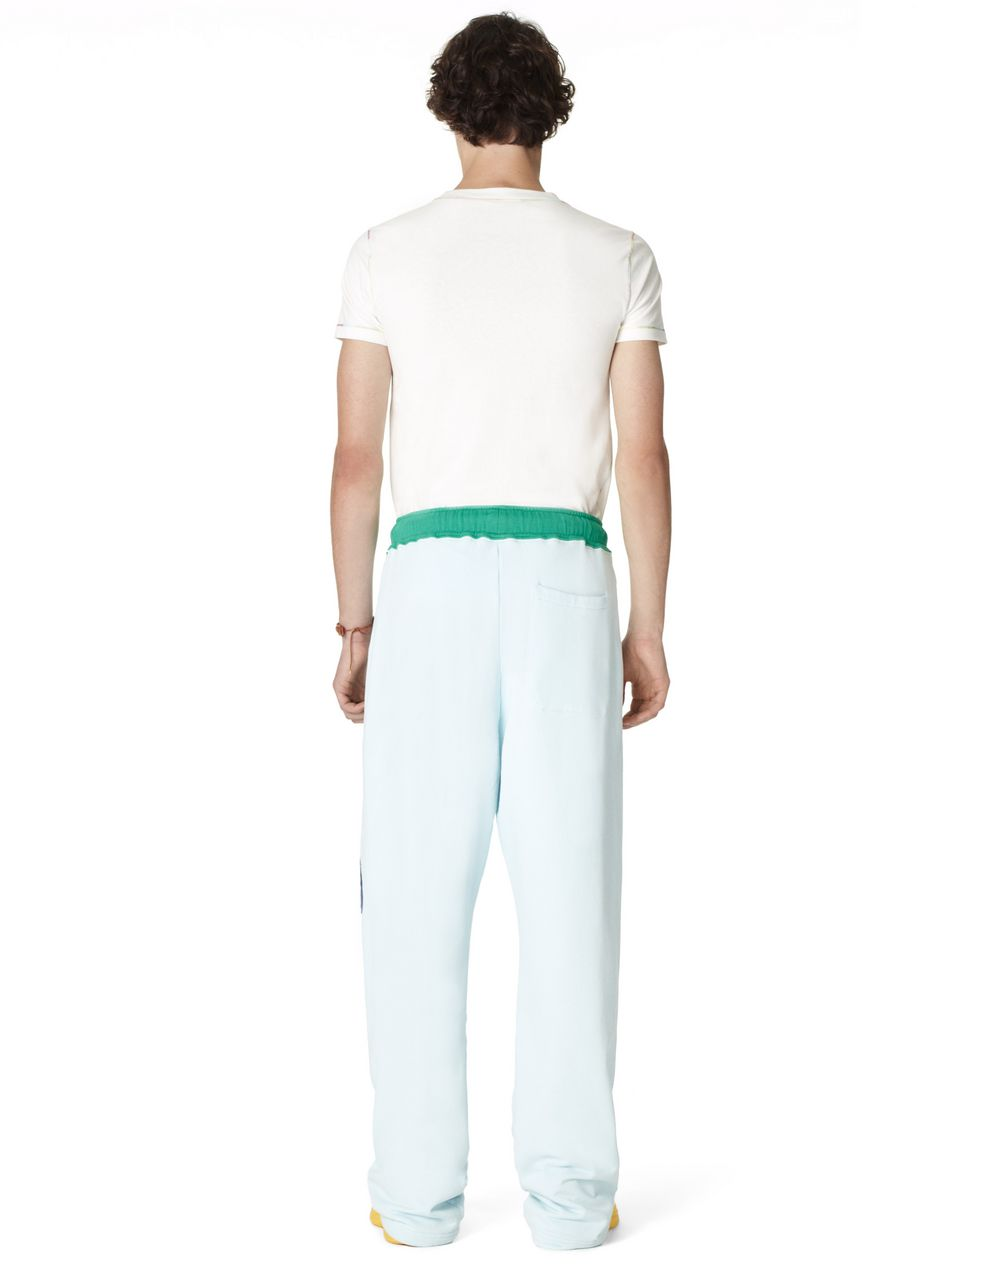 FULL SUN JOGGING PANTS - Lanvin